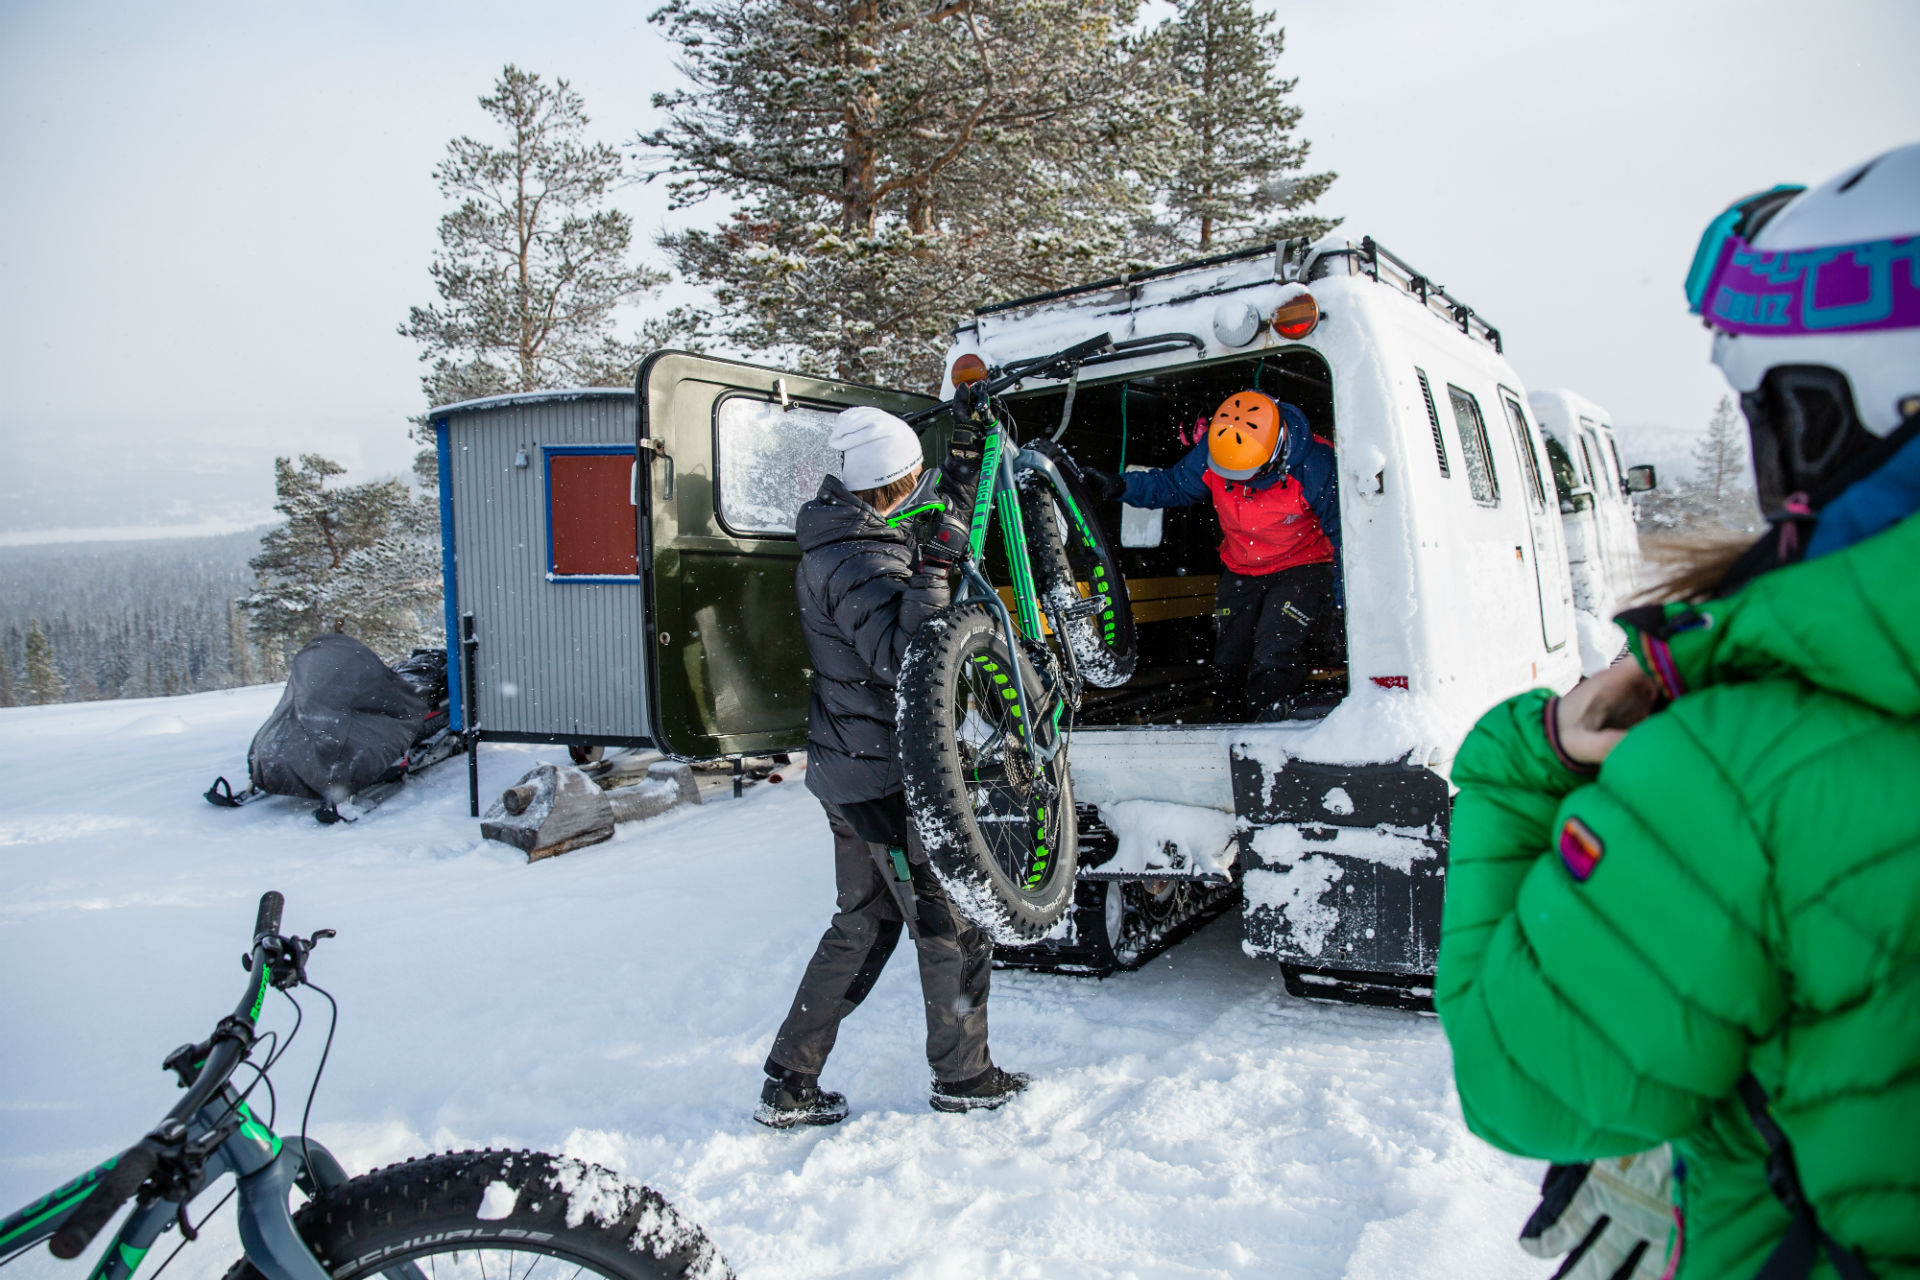 Loading fatbikes onto snow-trac